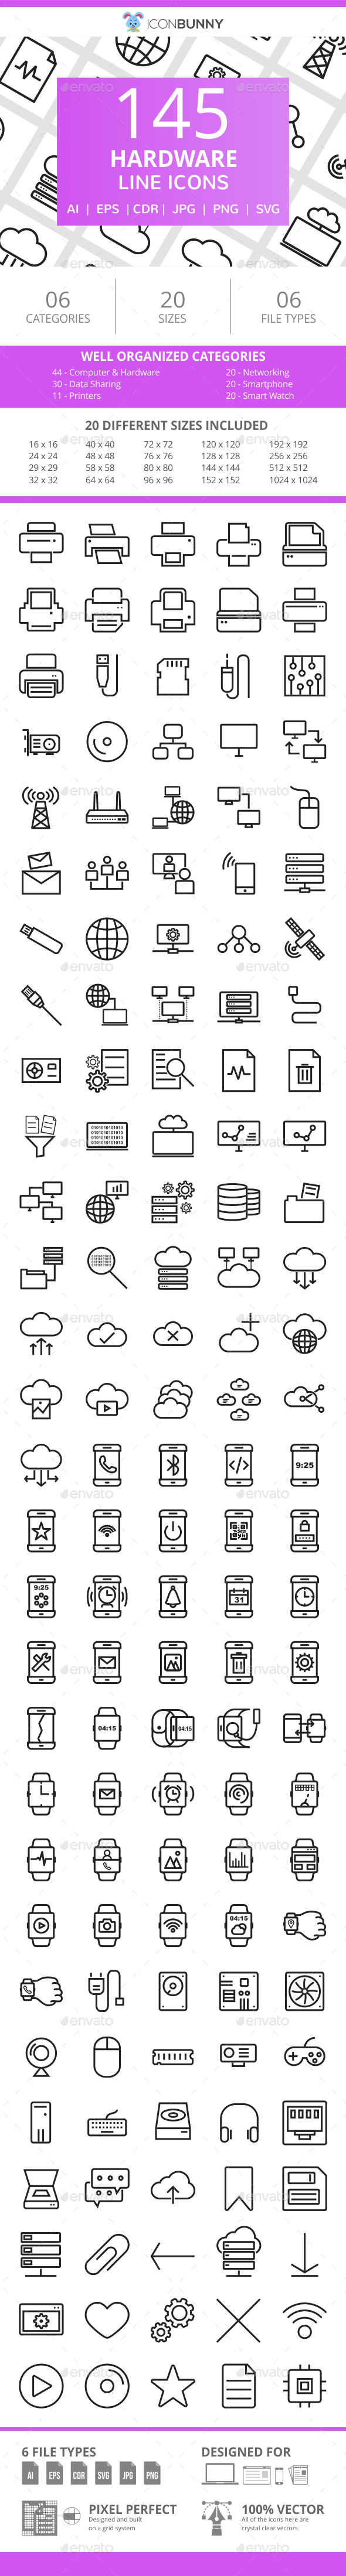 166 Hardware Line Icons - Icons